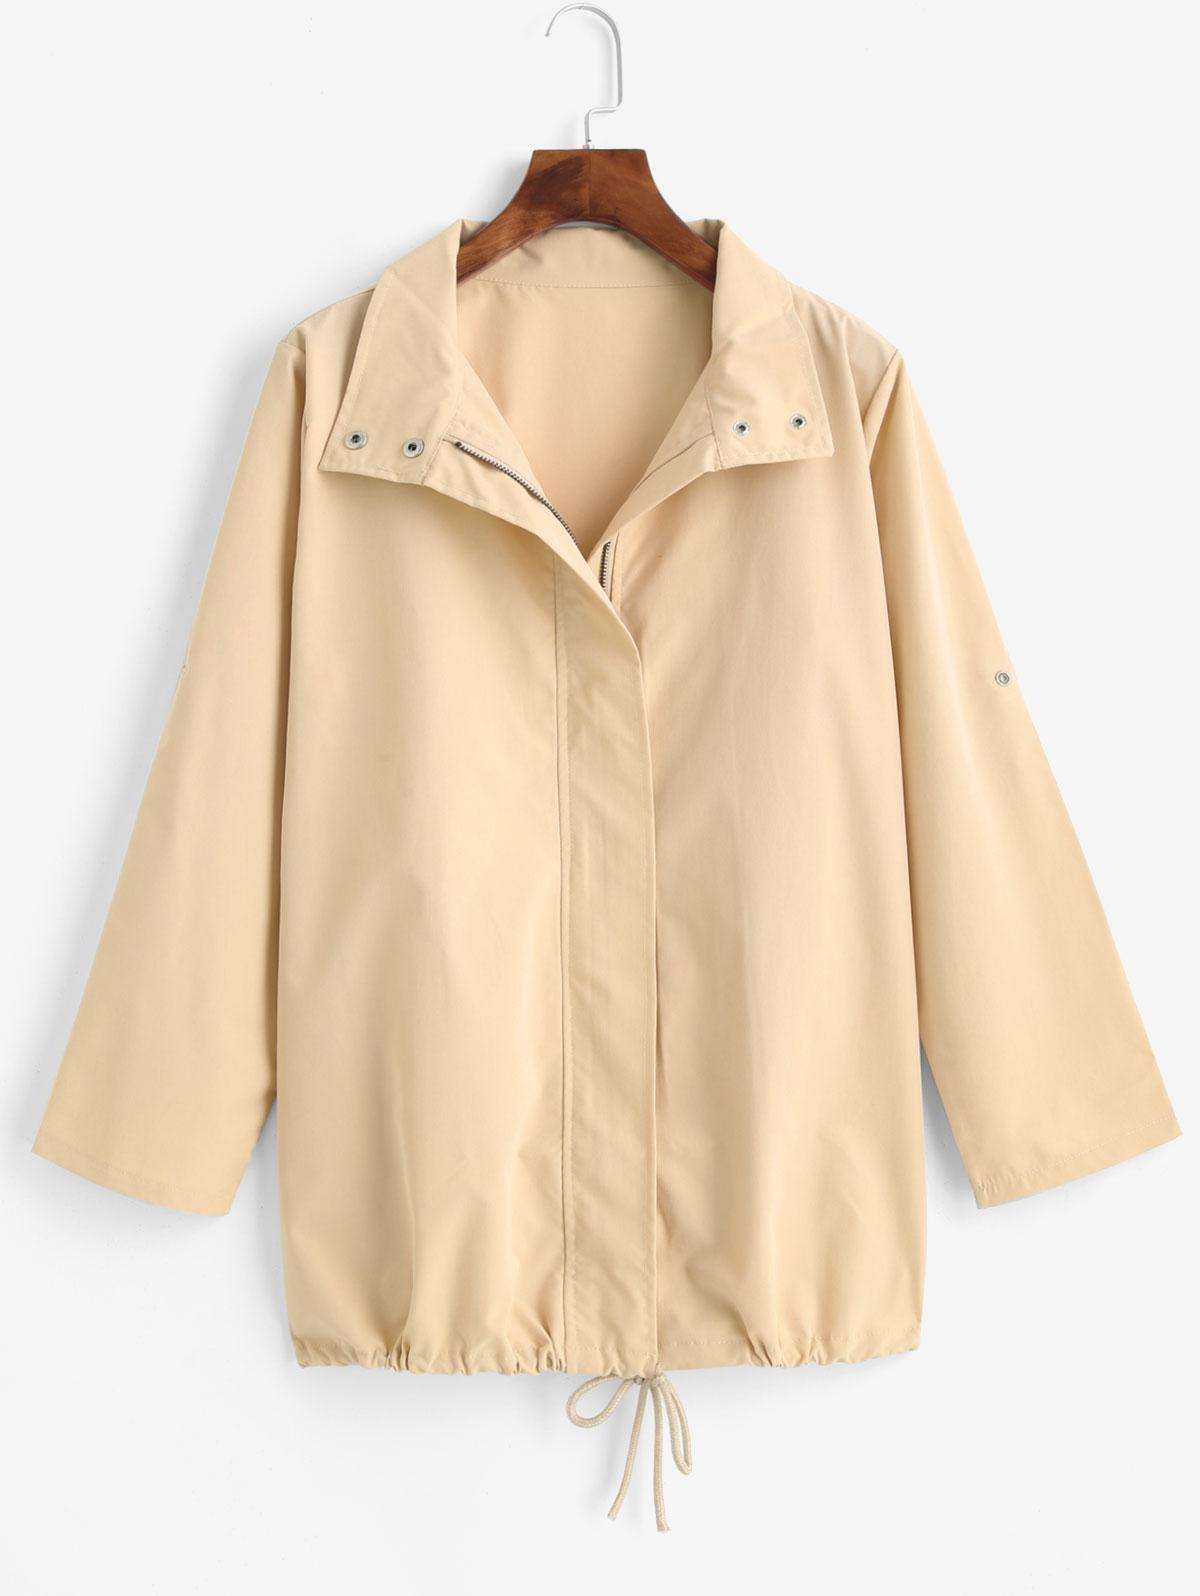 Drawstring Hem Roll Up Sleeve Zipper Trench Coat